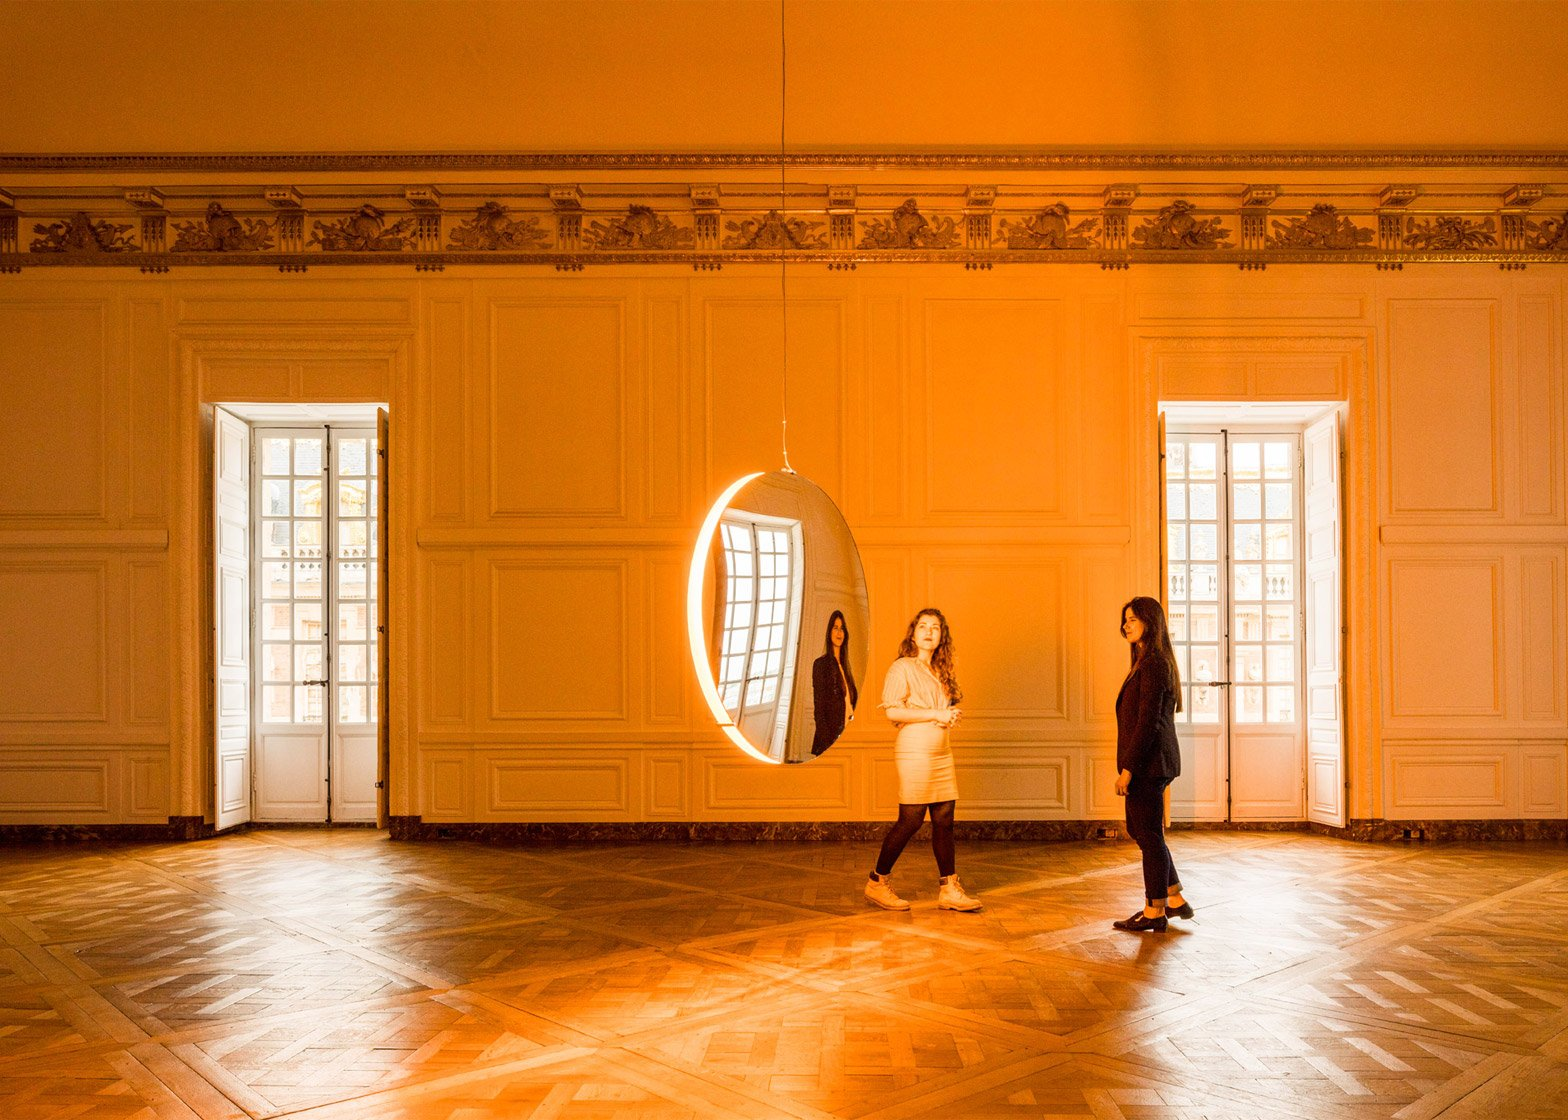 Solar Compression by Olafur Eliasson at the Palace of Versailles, France